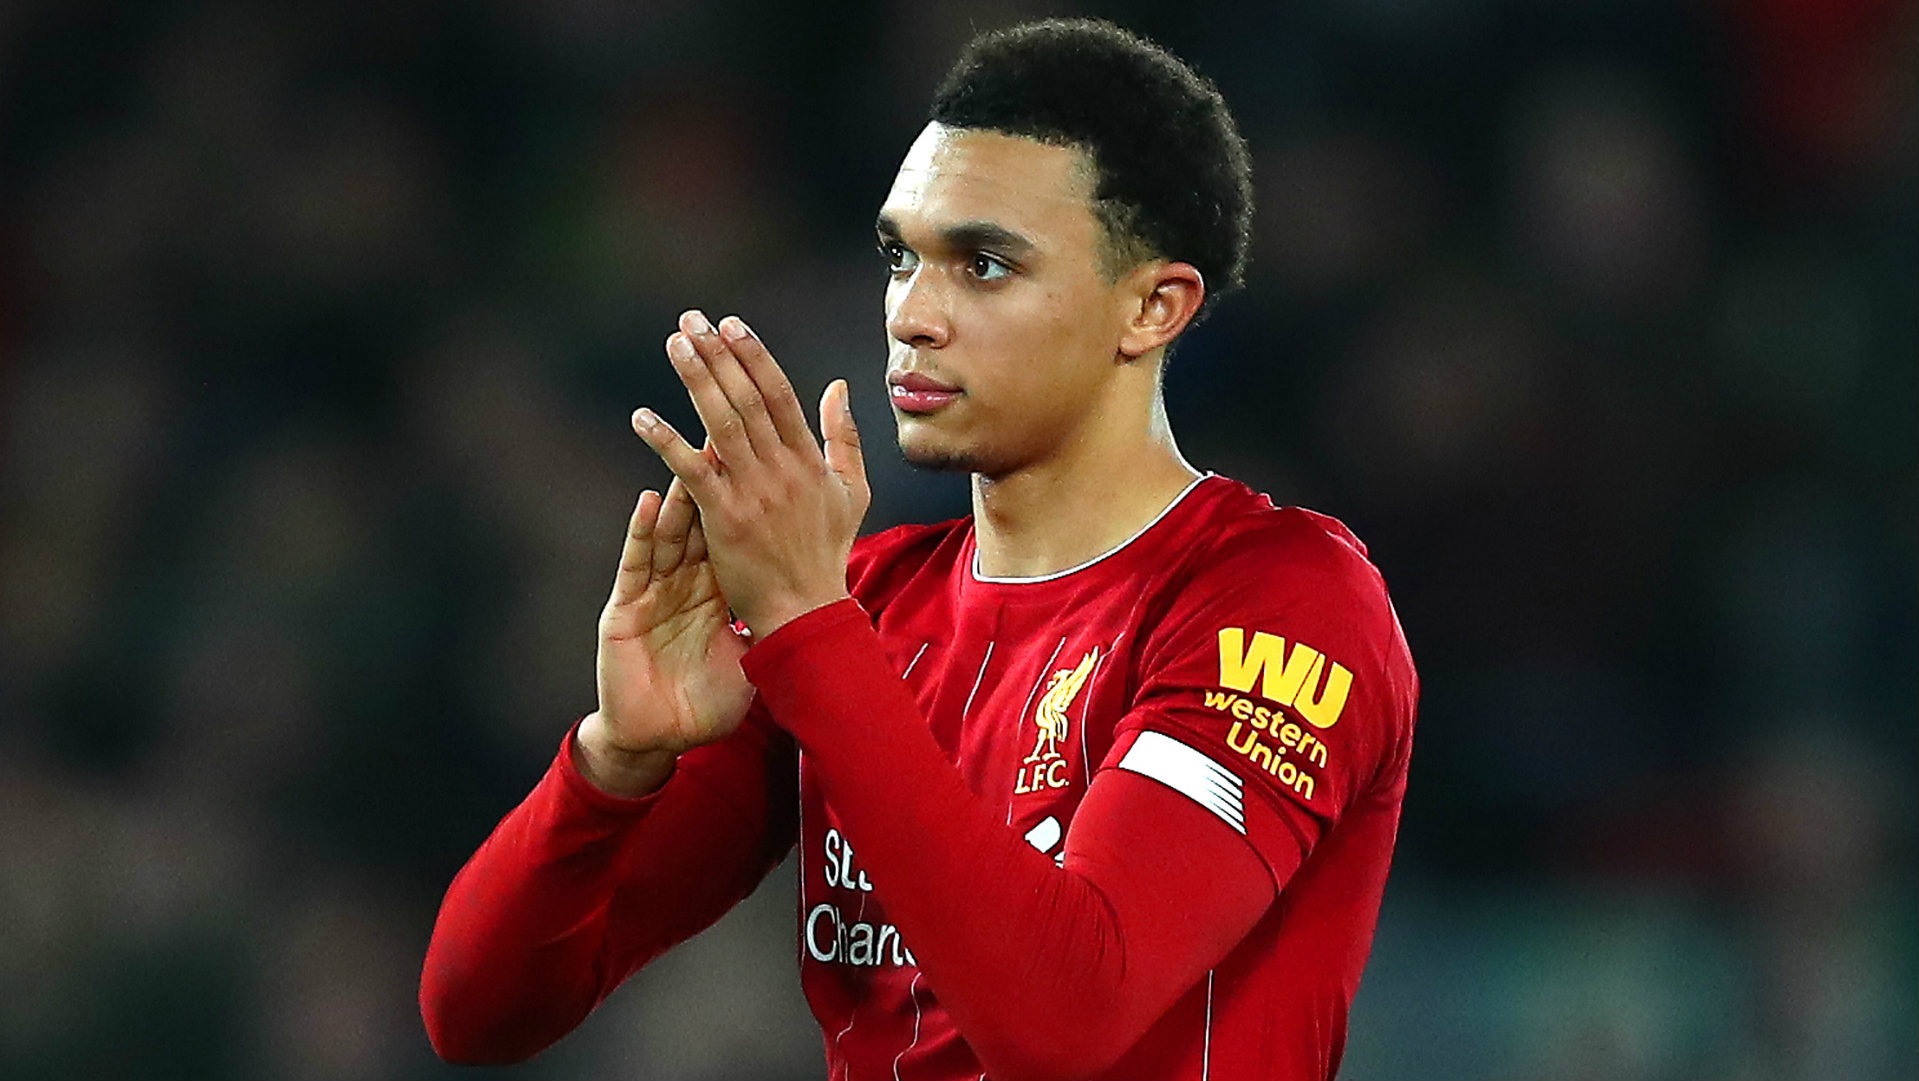 My family sacrificed a lot for me' - Liverpool's Alexander-Arnold opens up  on his path to stardom | Goal.com